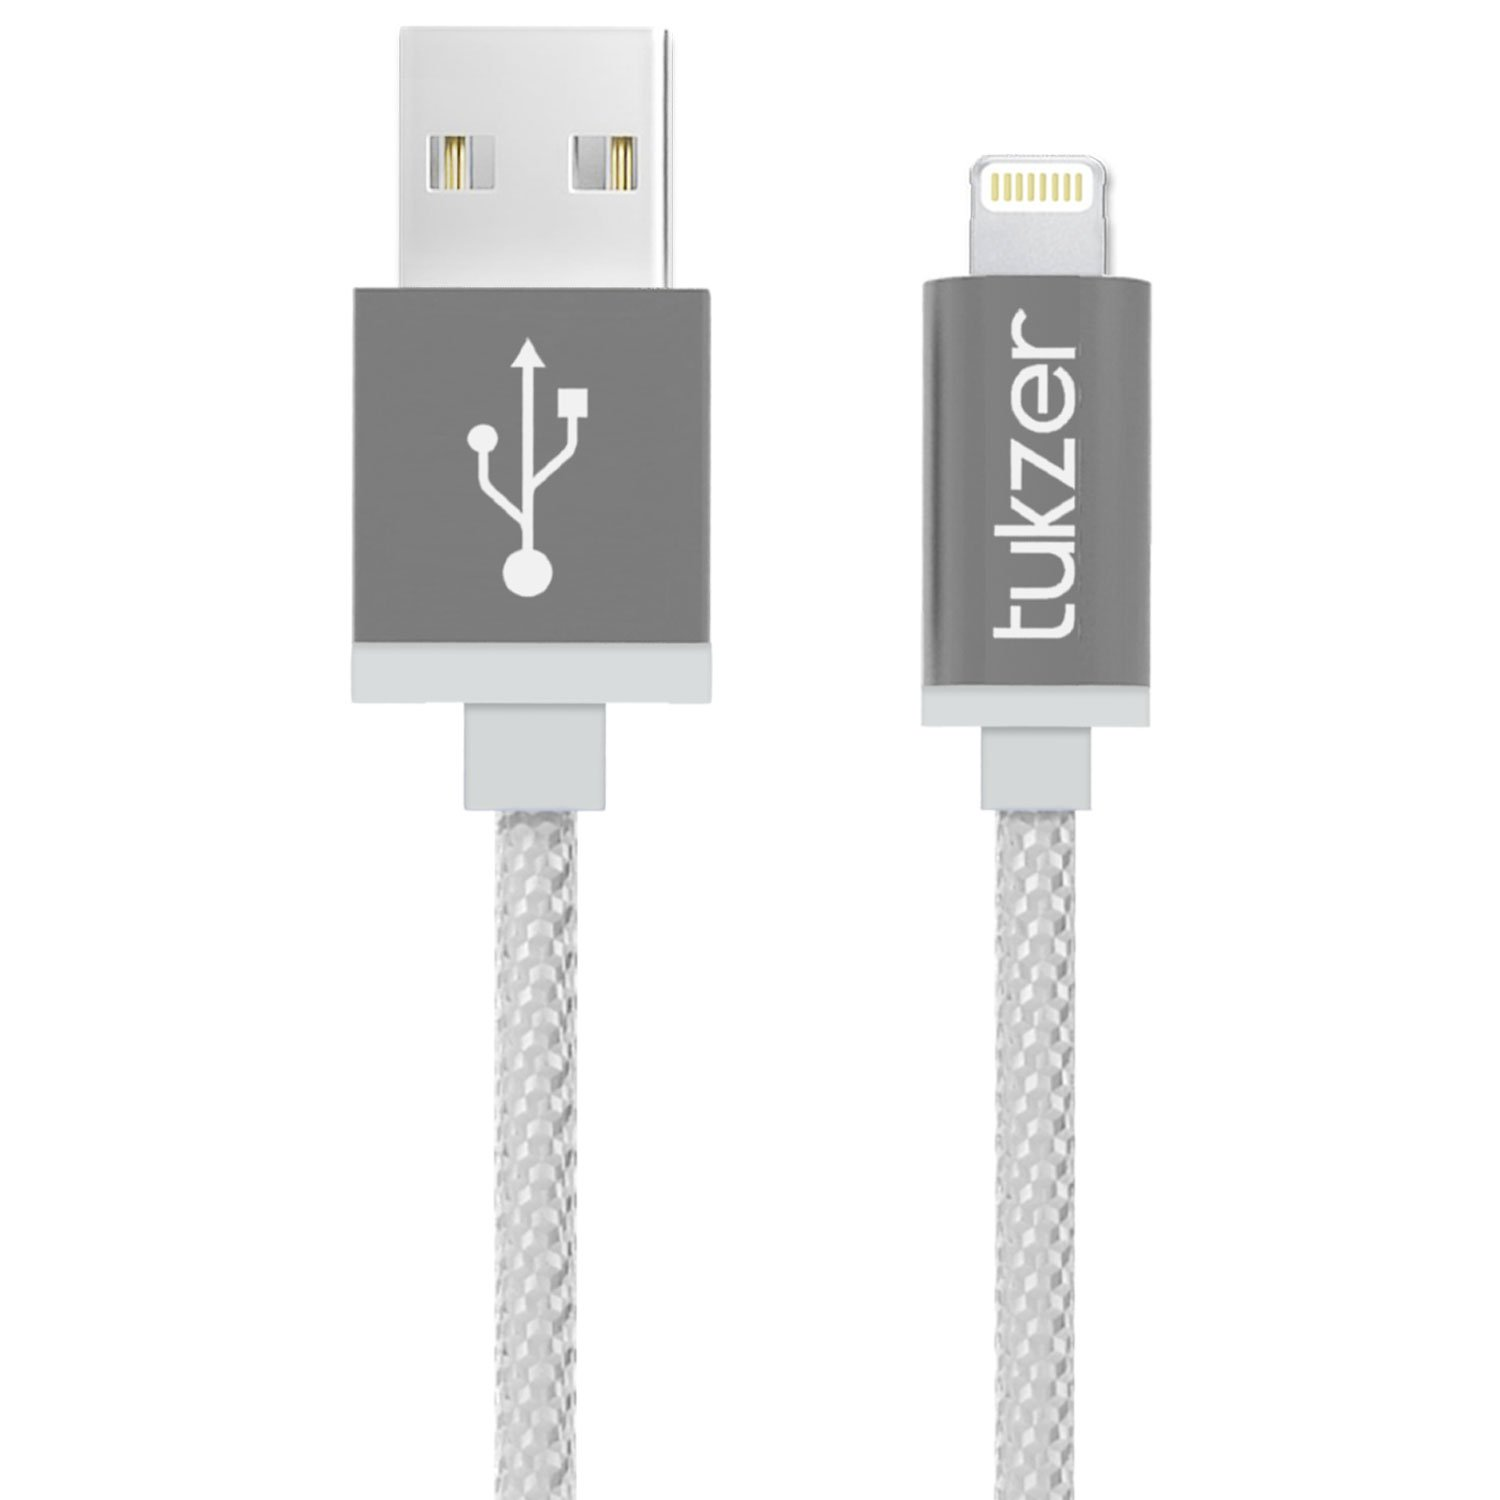 Tukzer (Apple MFI Certified) Nylon Braided 3.2ft/ 1m 8 Pin Lightning to USB Cable 2.4Amp Premium Fast Charging & Data Sync Cable (Gray)